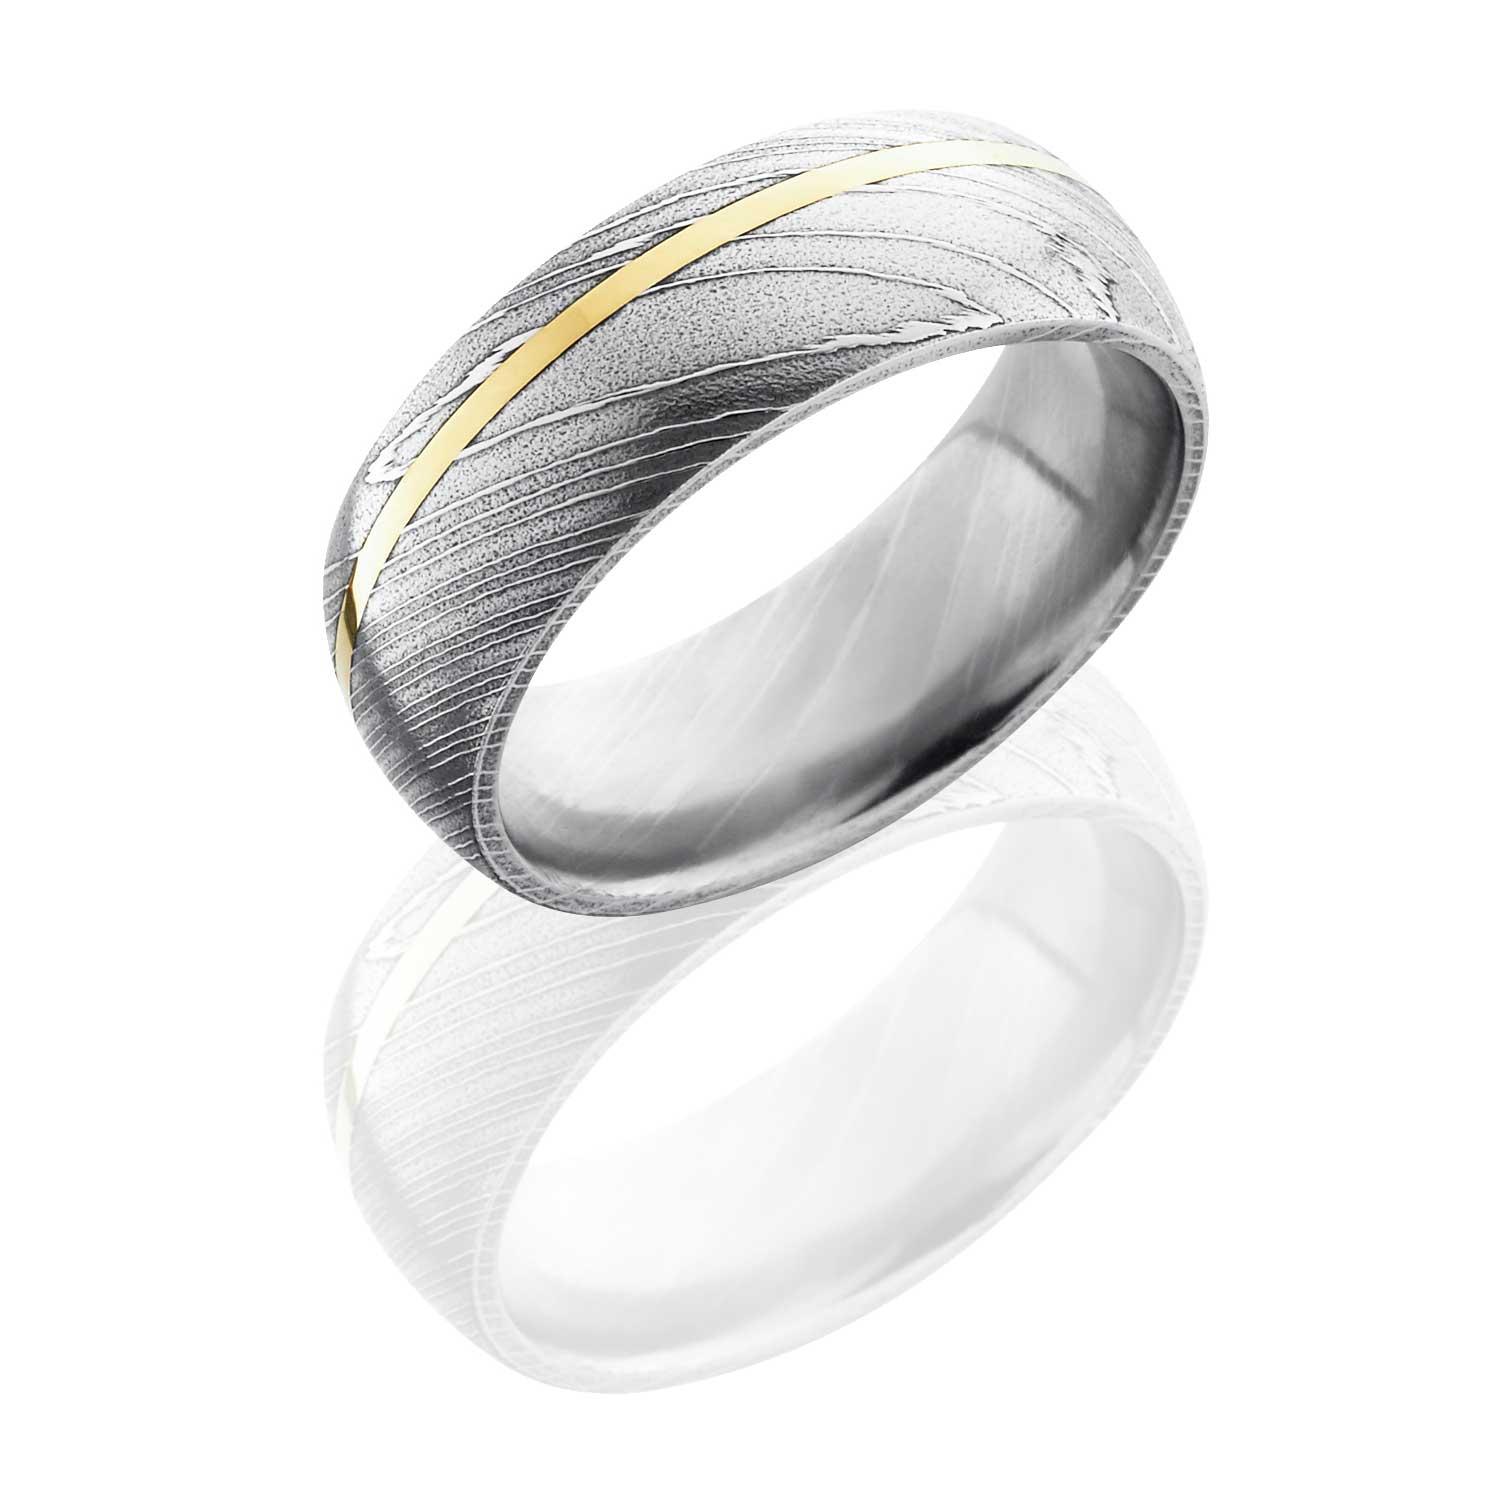 damascus steel band with off center yellow gold inlay lb damascus steel wedding bands Damascus steel band with off center yellow gold inlay LB LB 00 Russian Brilliants